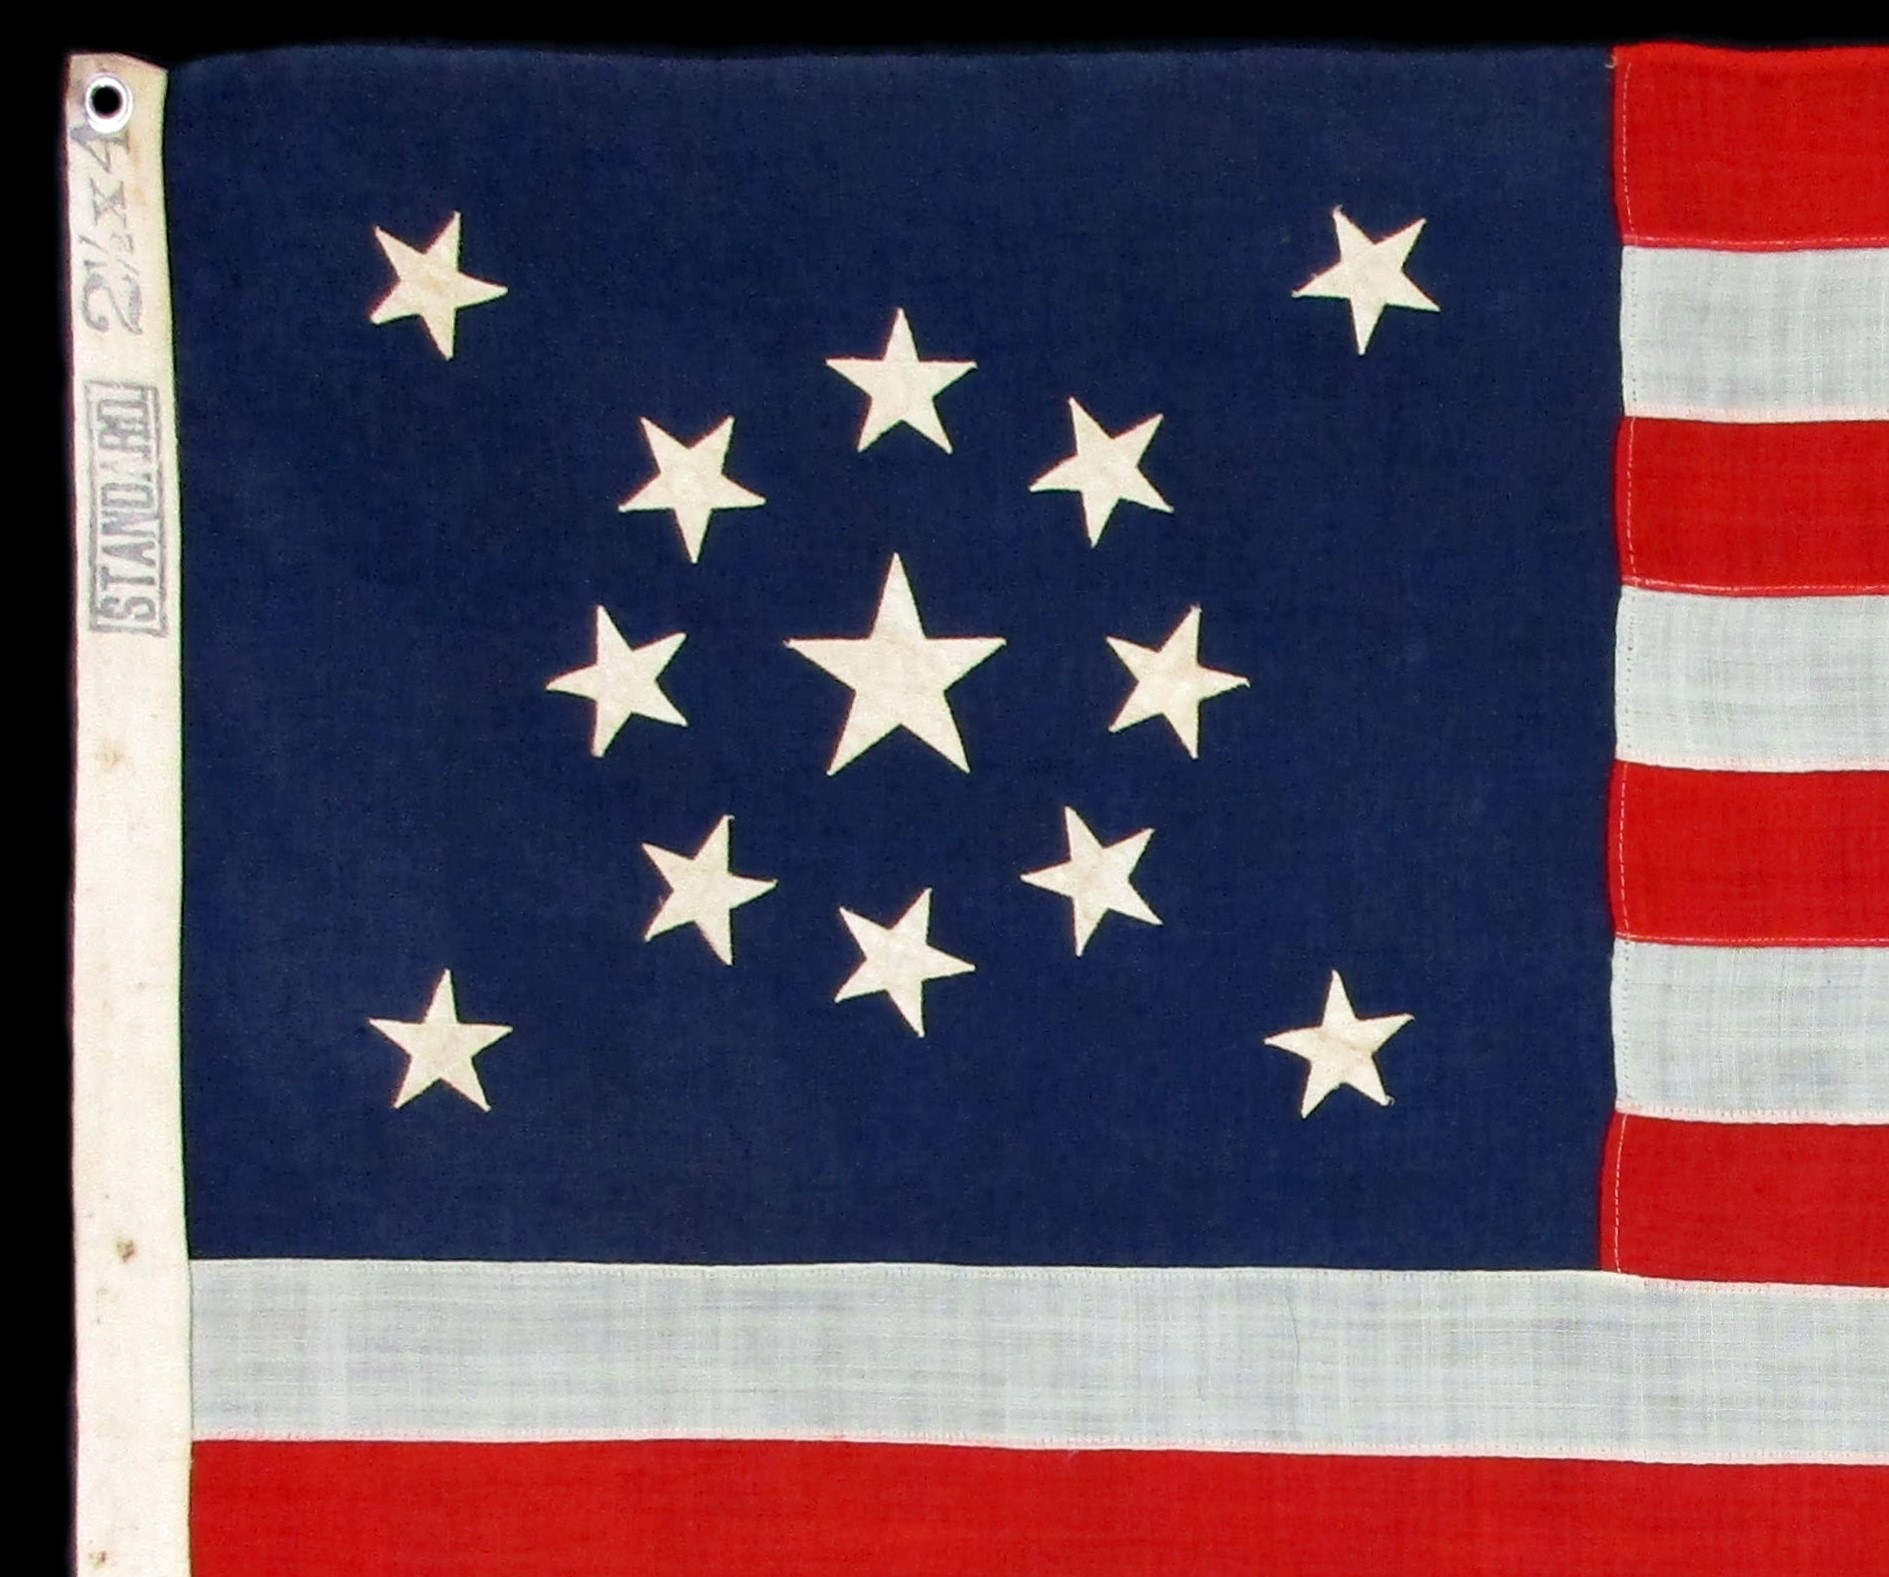 Antique Flag with Standard Marking